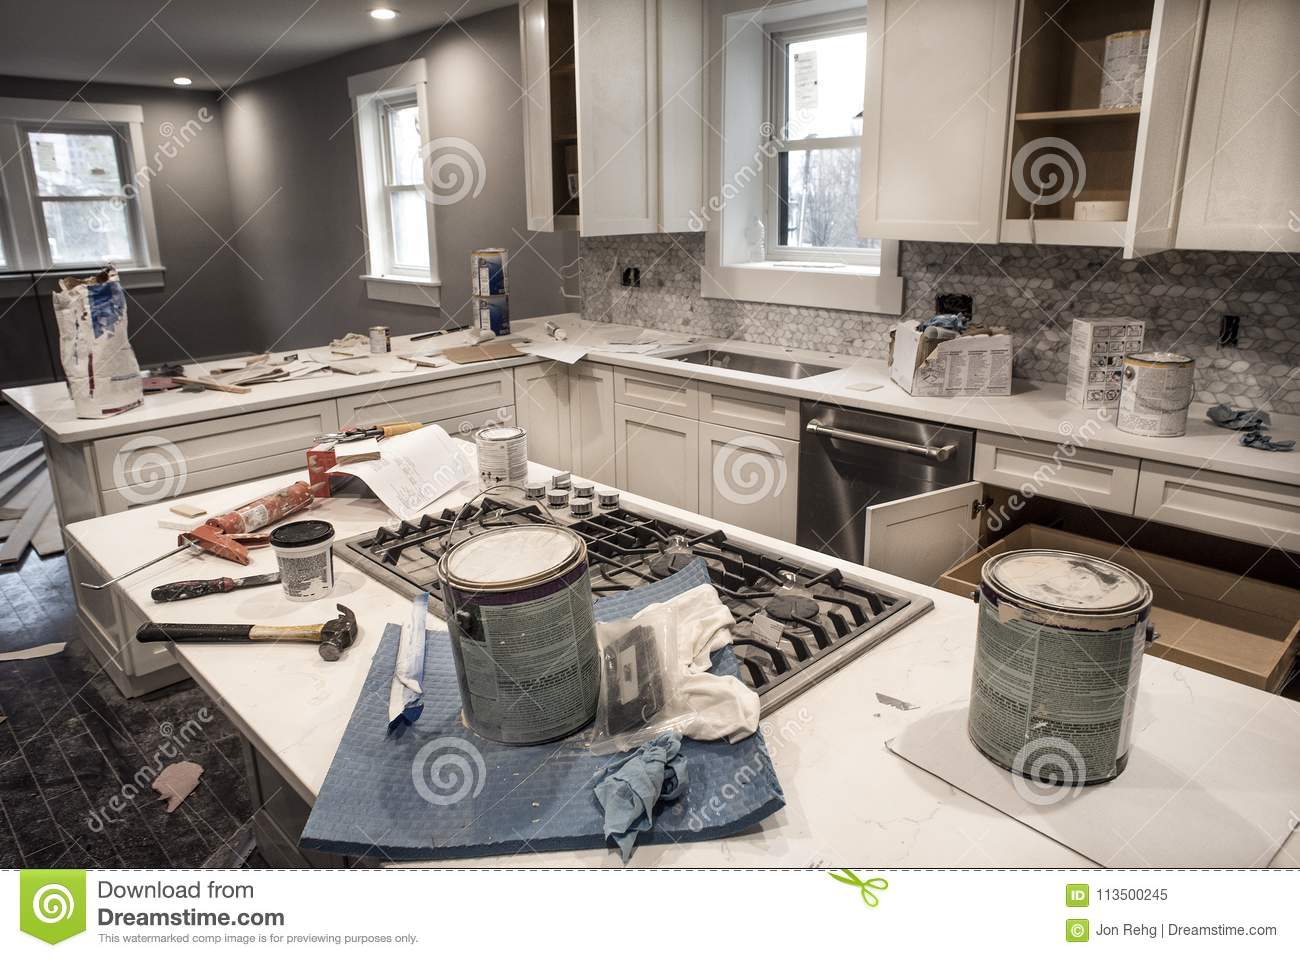 Messy Home Kitchen During Remodeling Fixer Upper With Kitchen Cabinet Doors